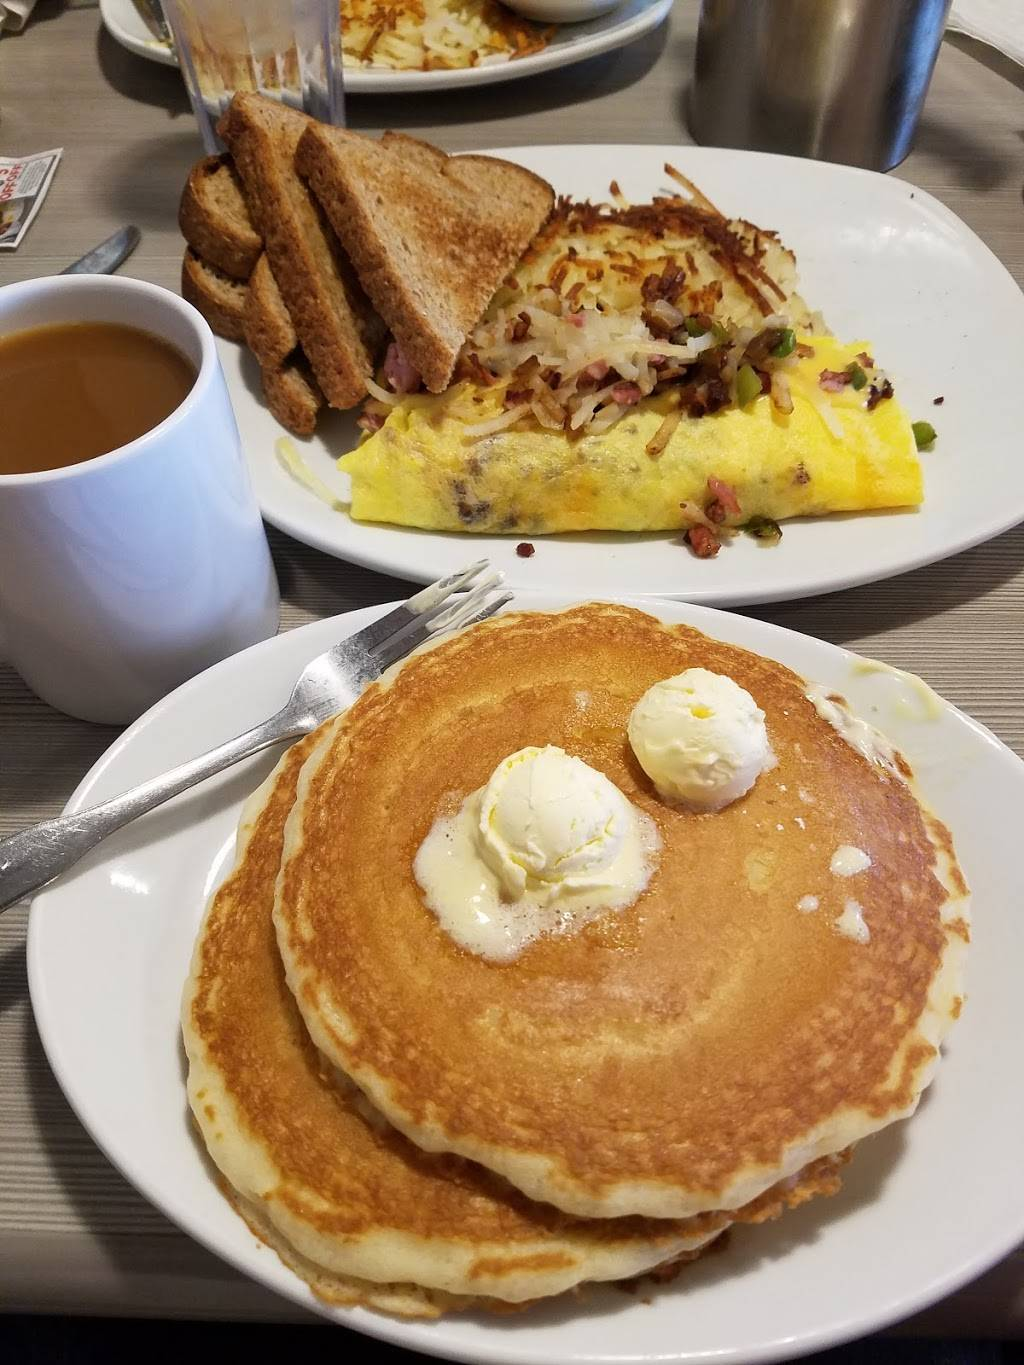 Perkins Restaurant & Bakery | restaurant | 700 Pine St, Monticello, MN 55362, USA | 7632954400 OR +1 763-295-4400